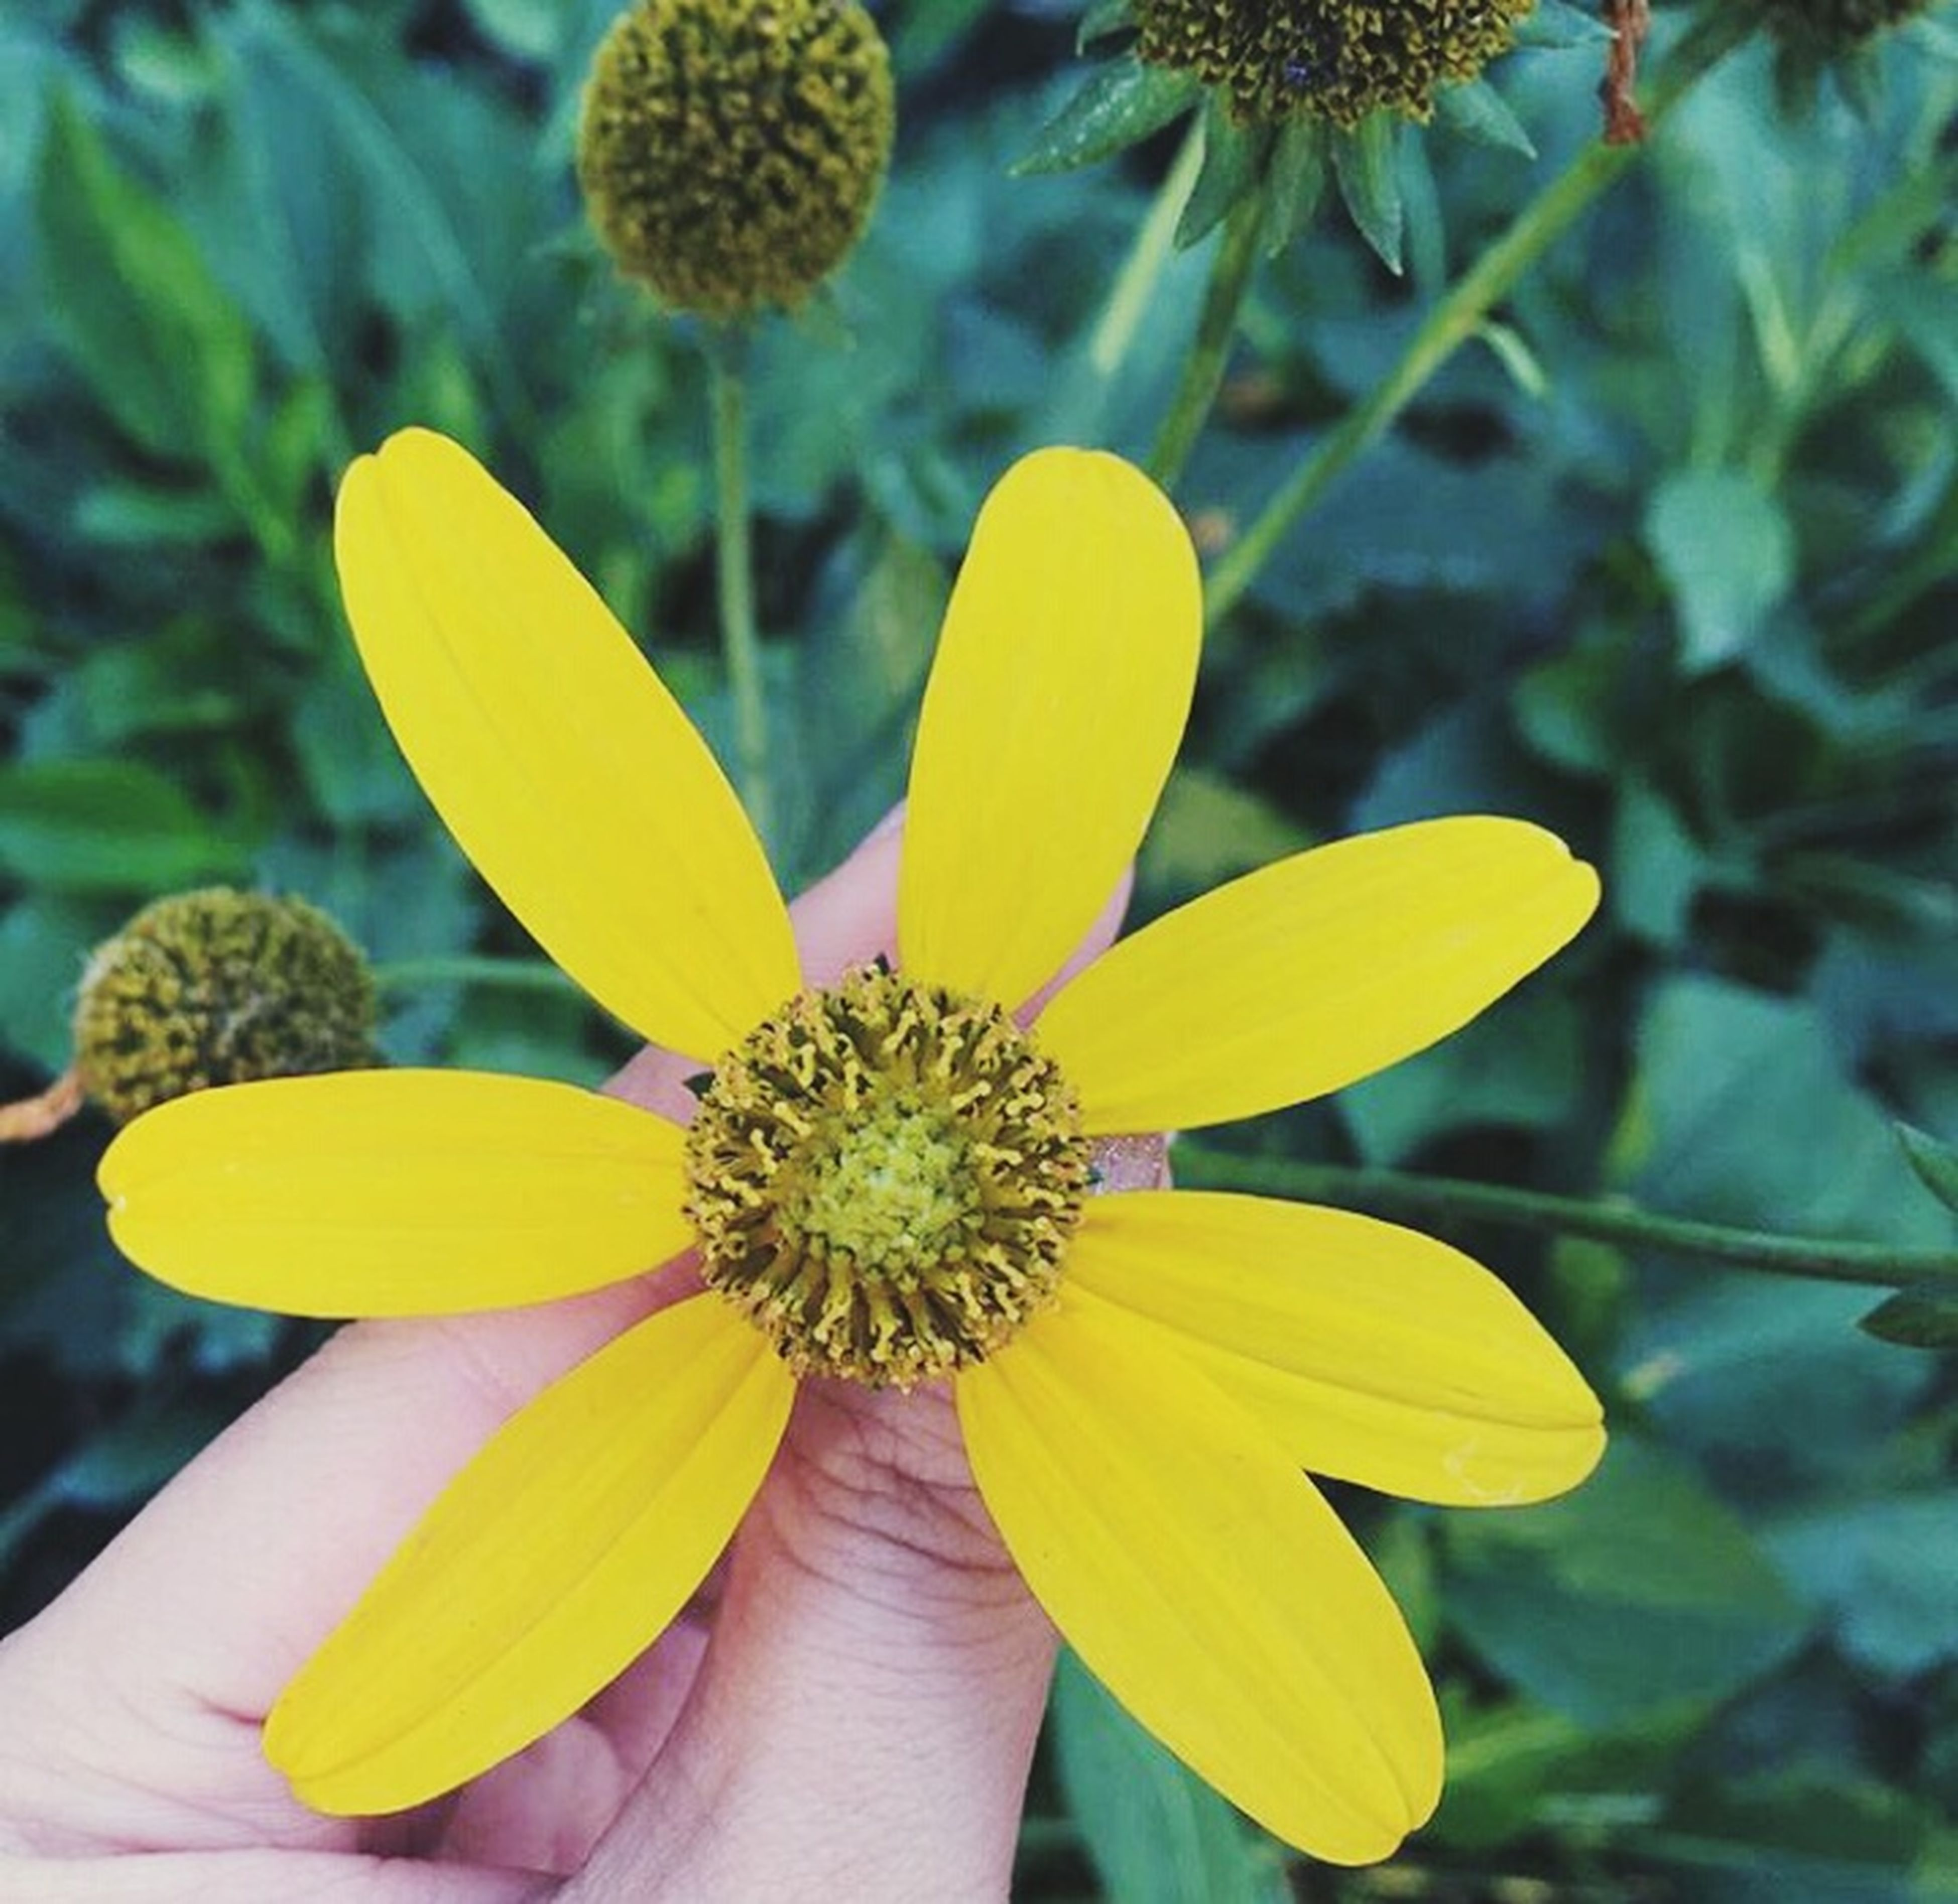 flower, yellow, petal, freshness, flower head, fragility, focus on foreground, close-up, growth, pollen, beauty in nature, nature, blooming, plant, single flower, day, outdoors, part of, in bloom, park - man made space